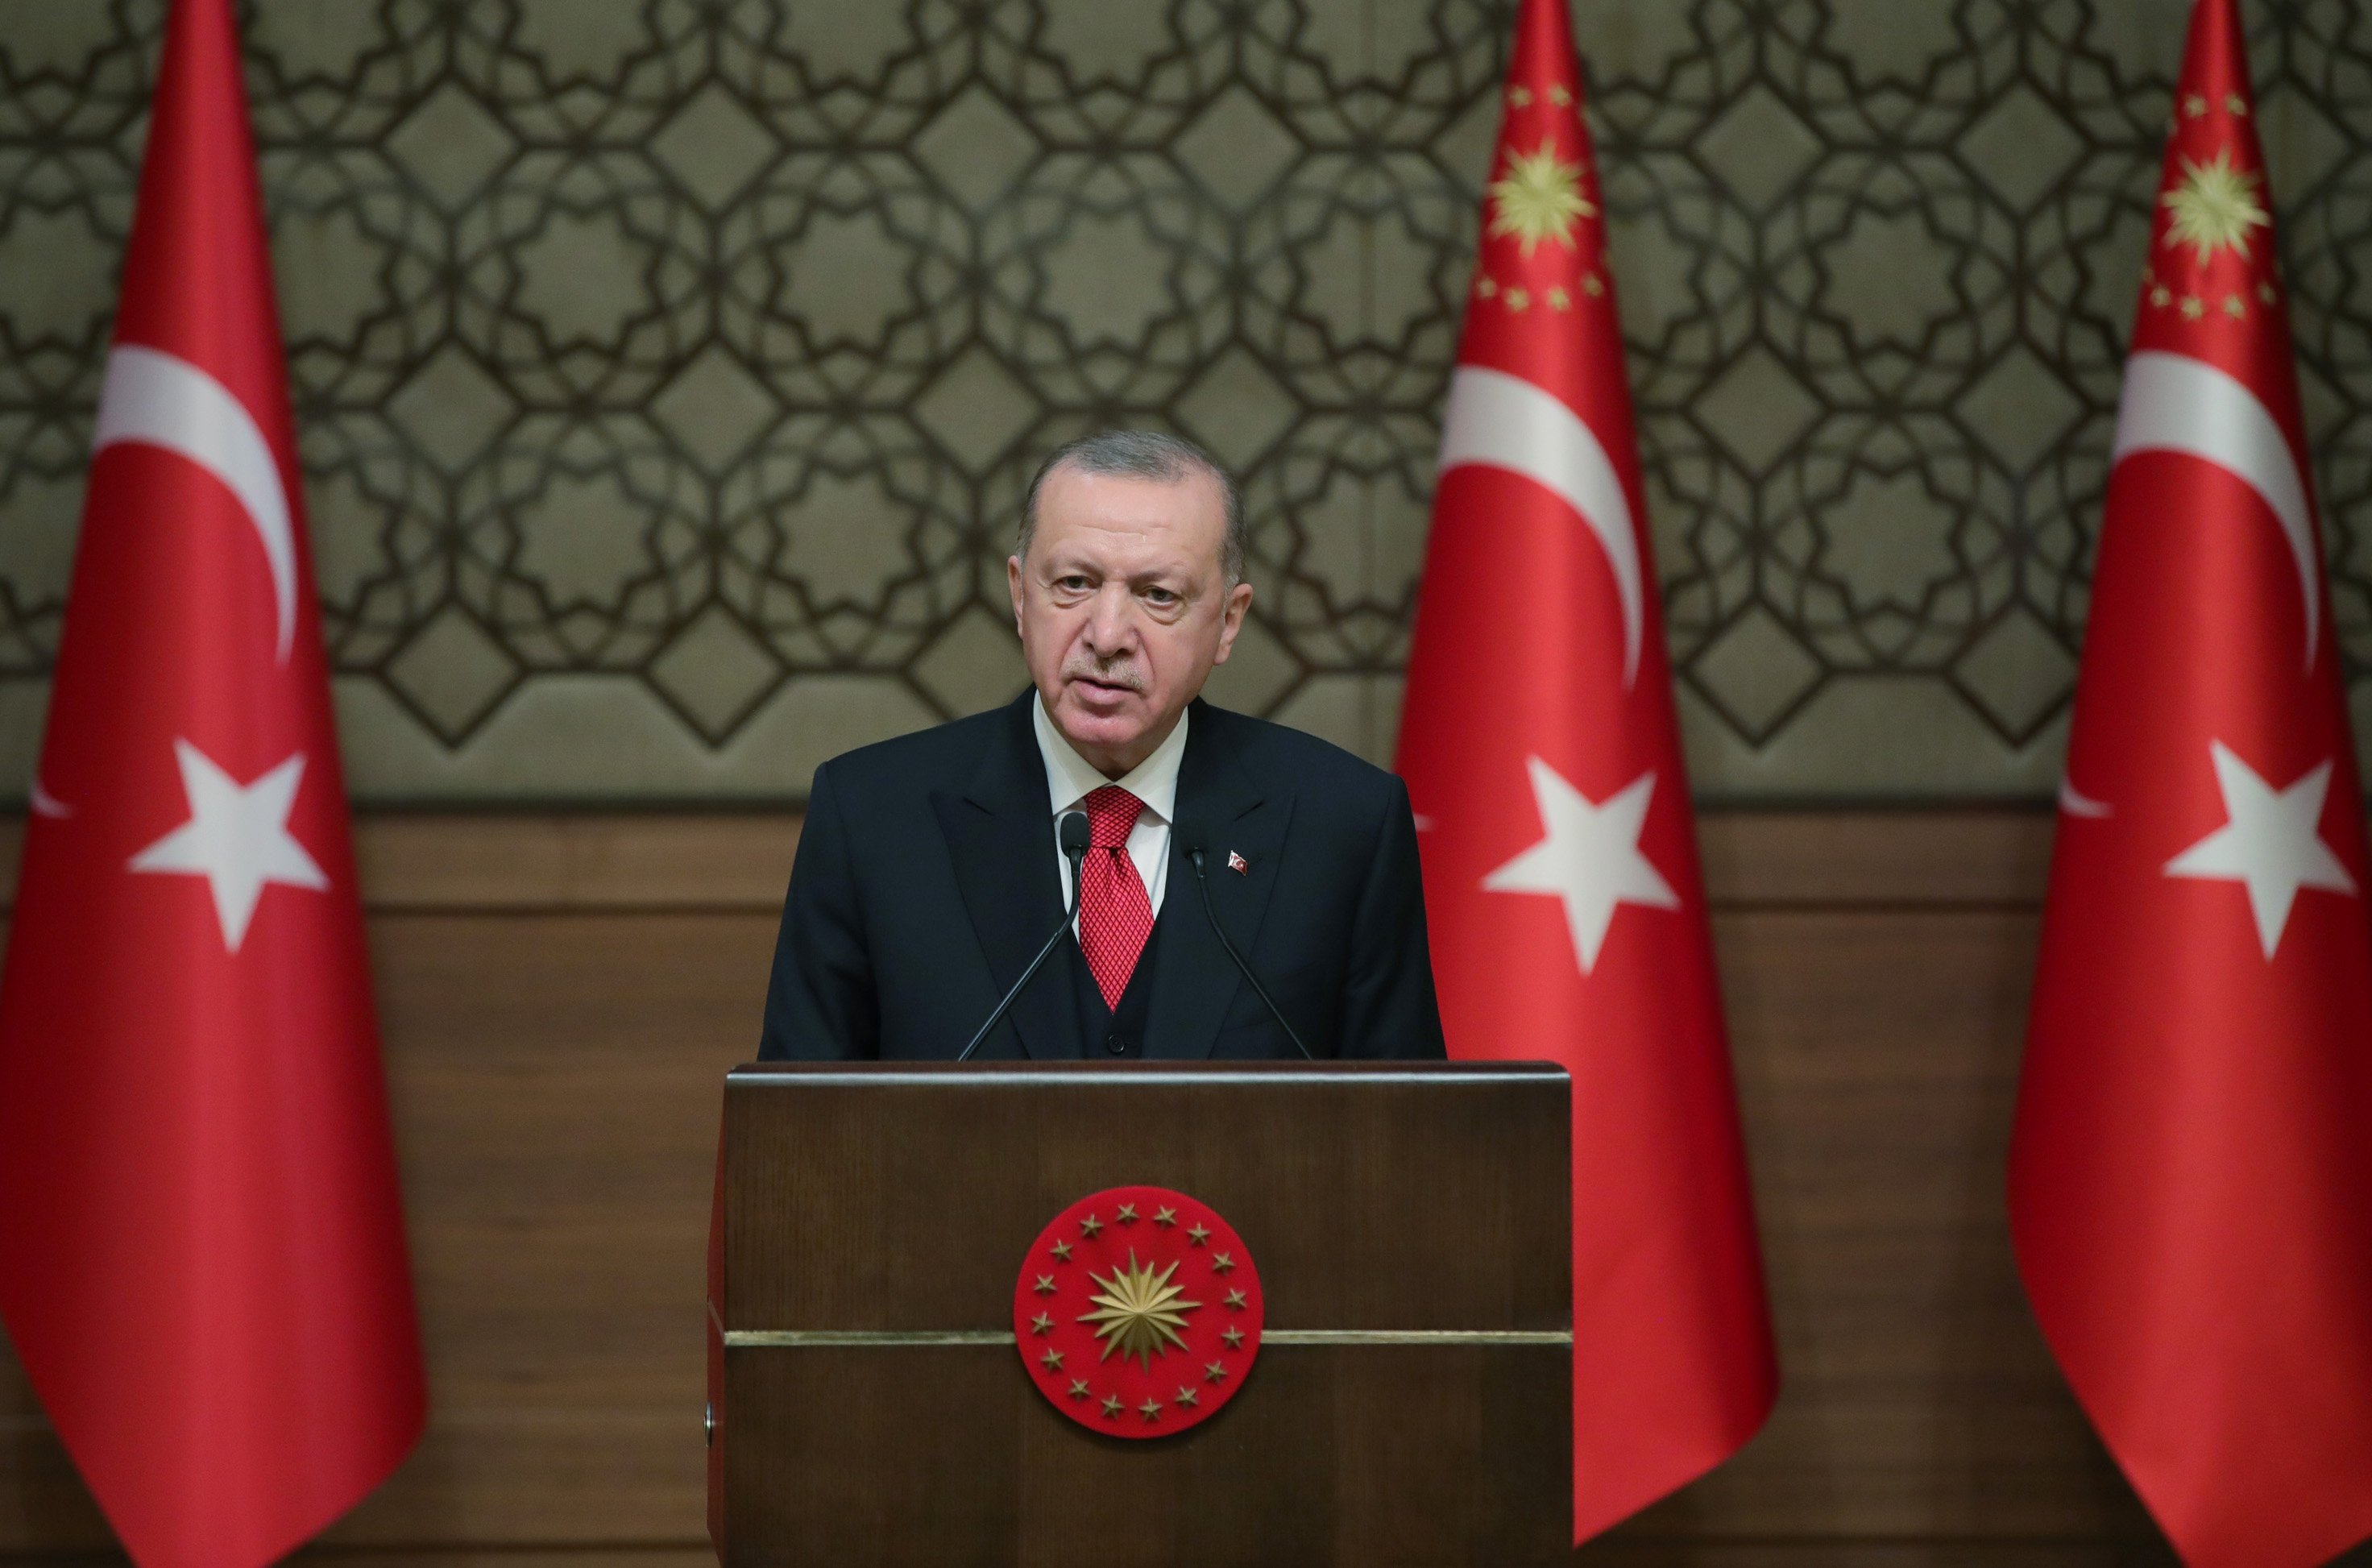 President Recep Tayyip Erdoğan speaks at the ceremony of the Ministry of Culture and Tourism 2019-2020 Special Awards, Ankara, Turkey, Jan. 20, 2021. (DHA PHOTO)